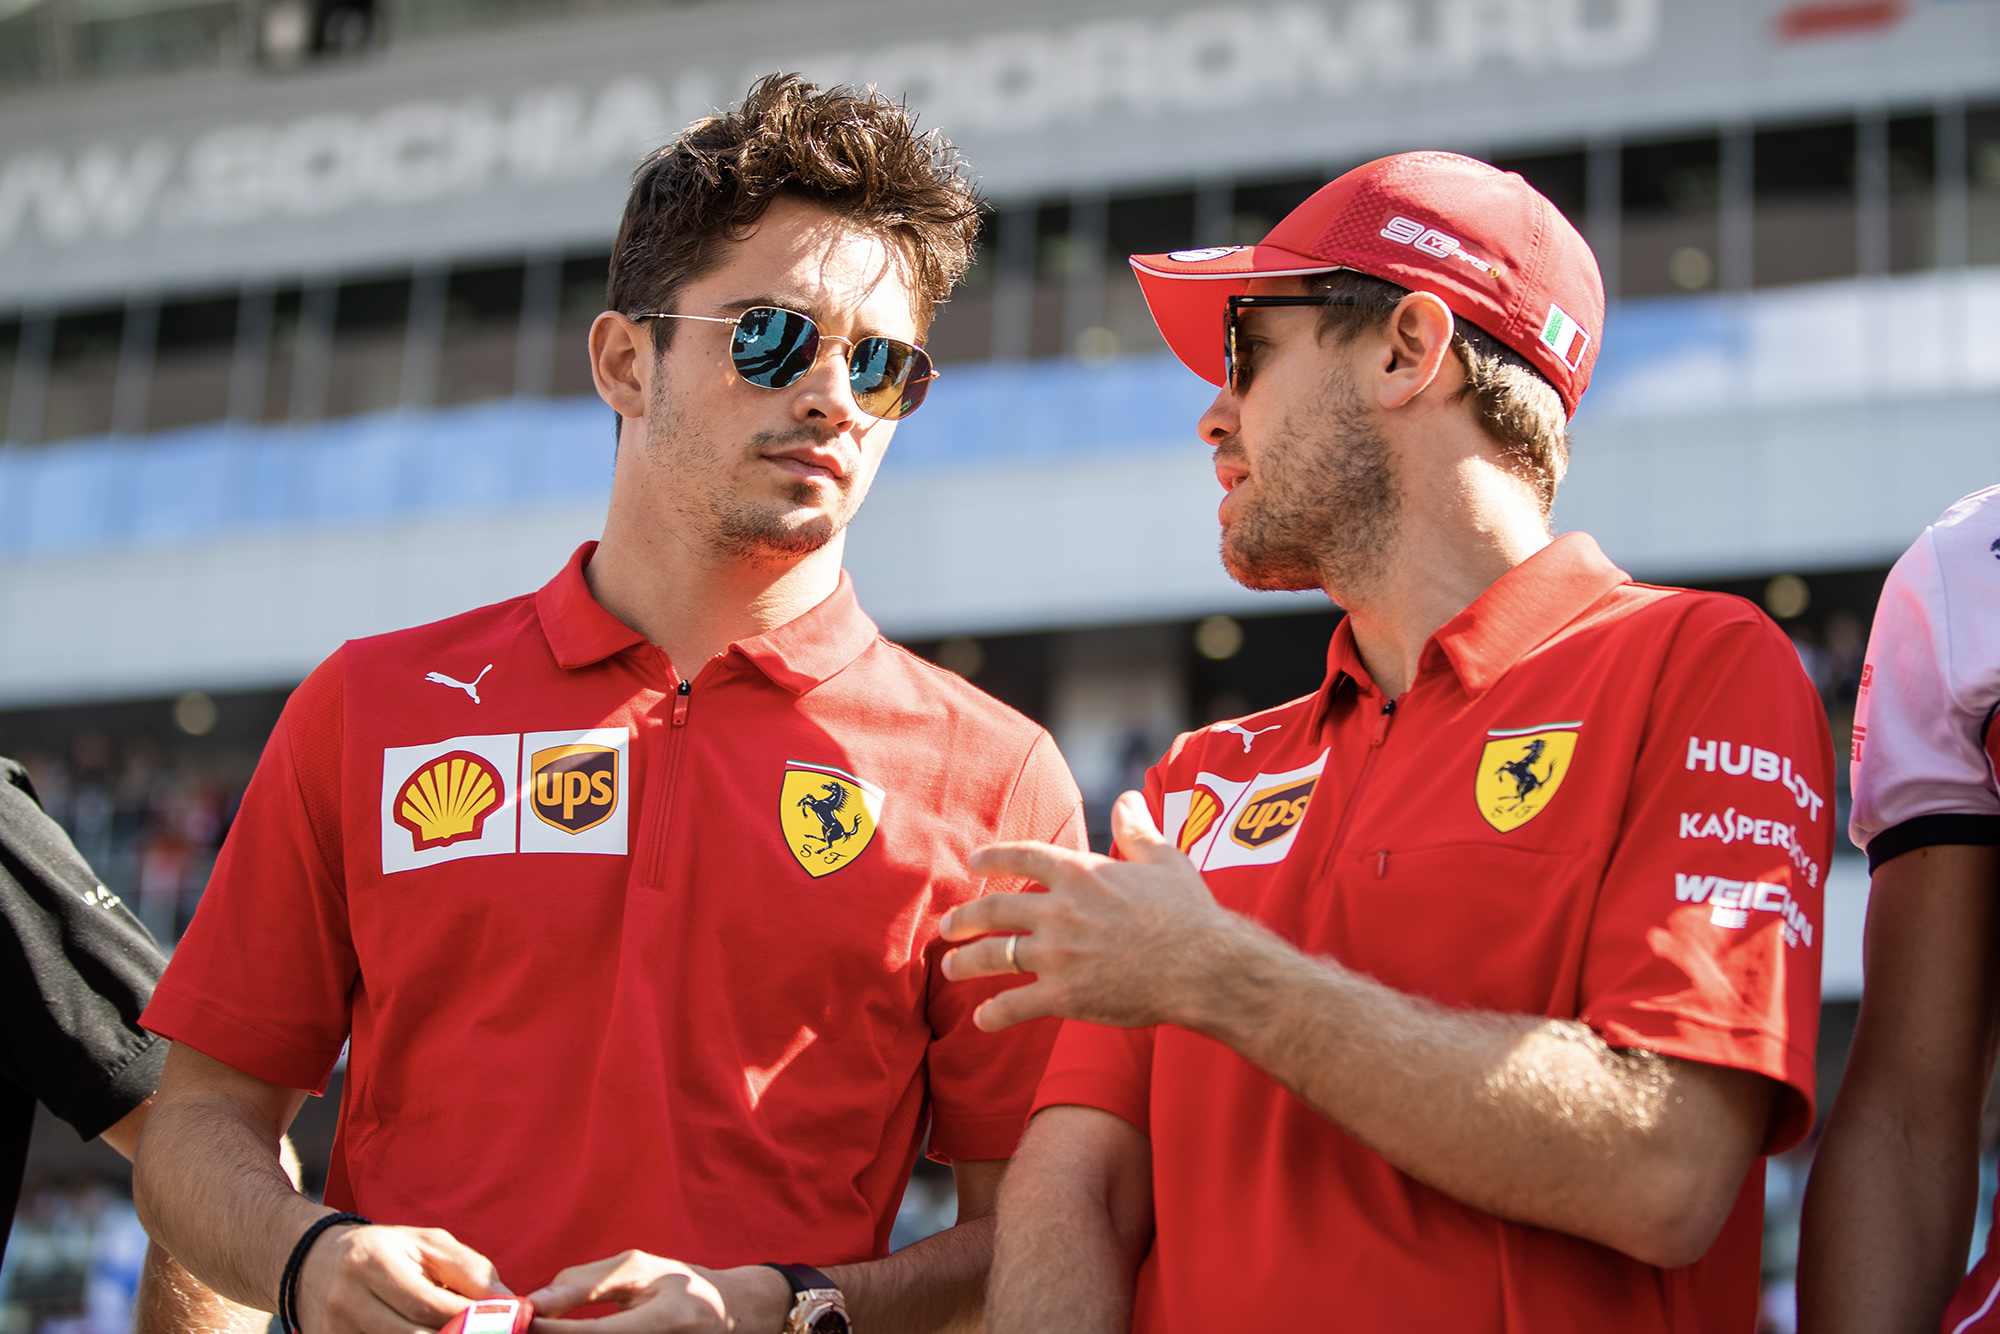 MPH: Will Vettel sign contract that confirms Leclerc as Ferrari No1?